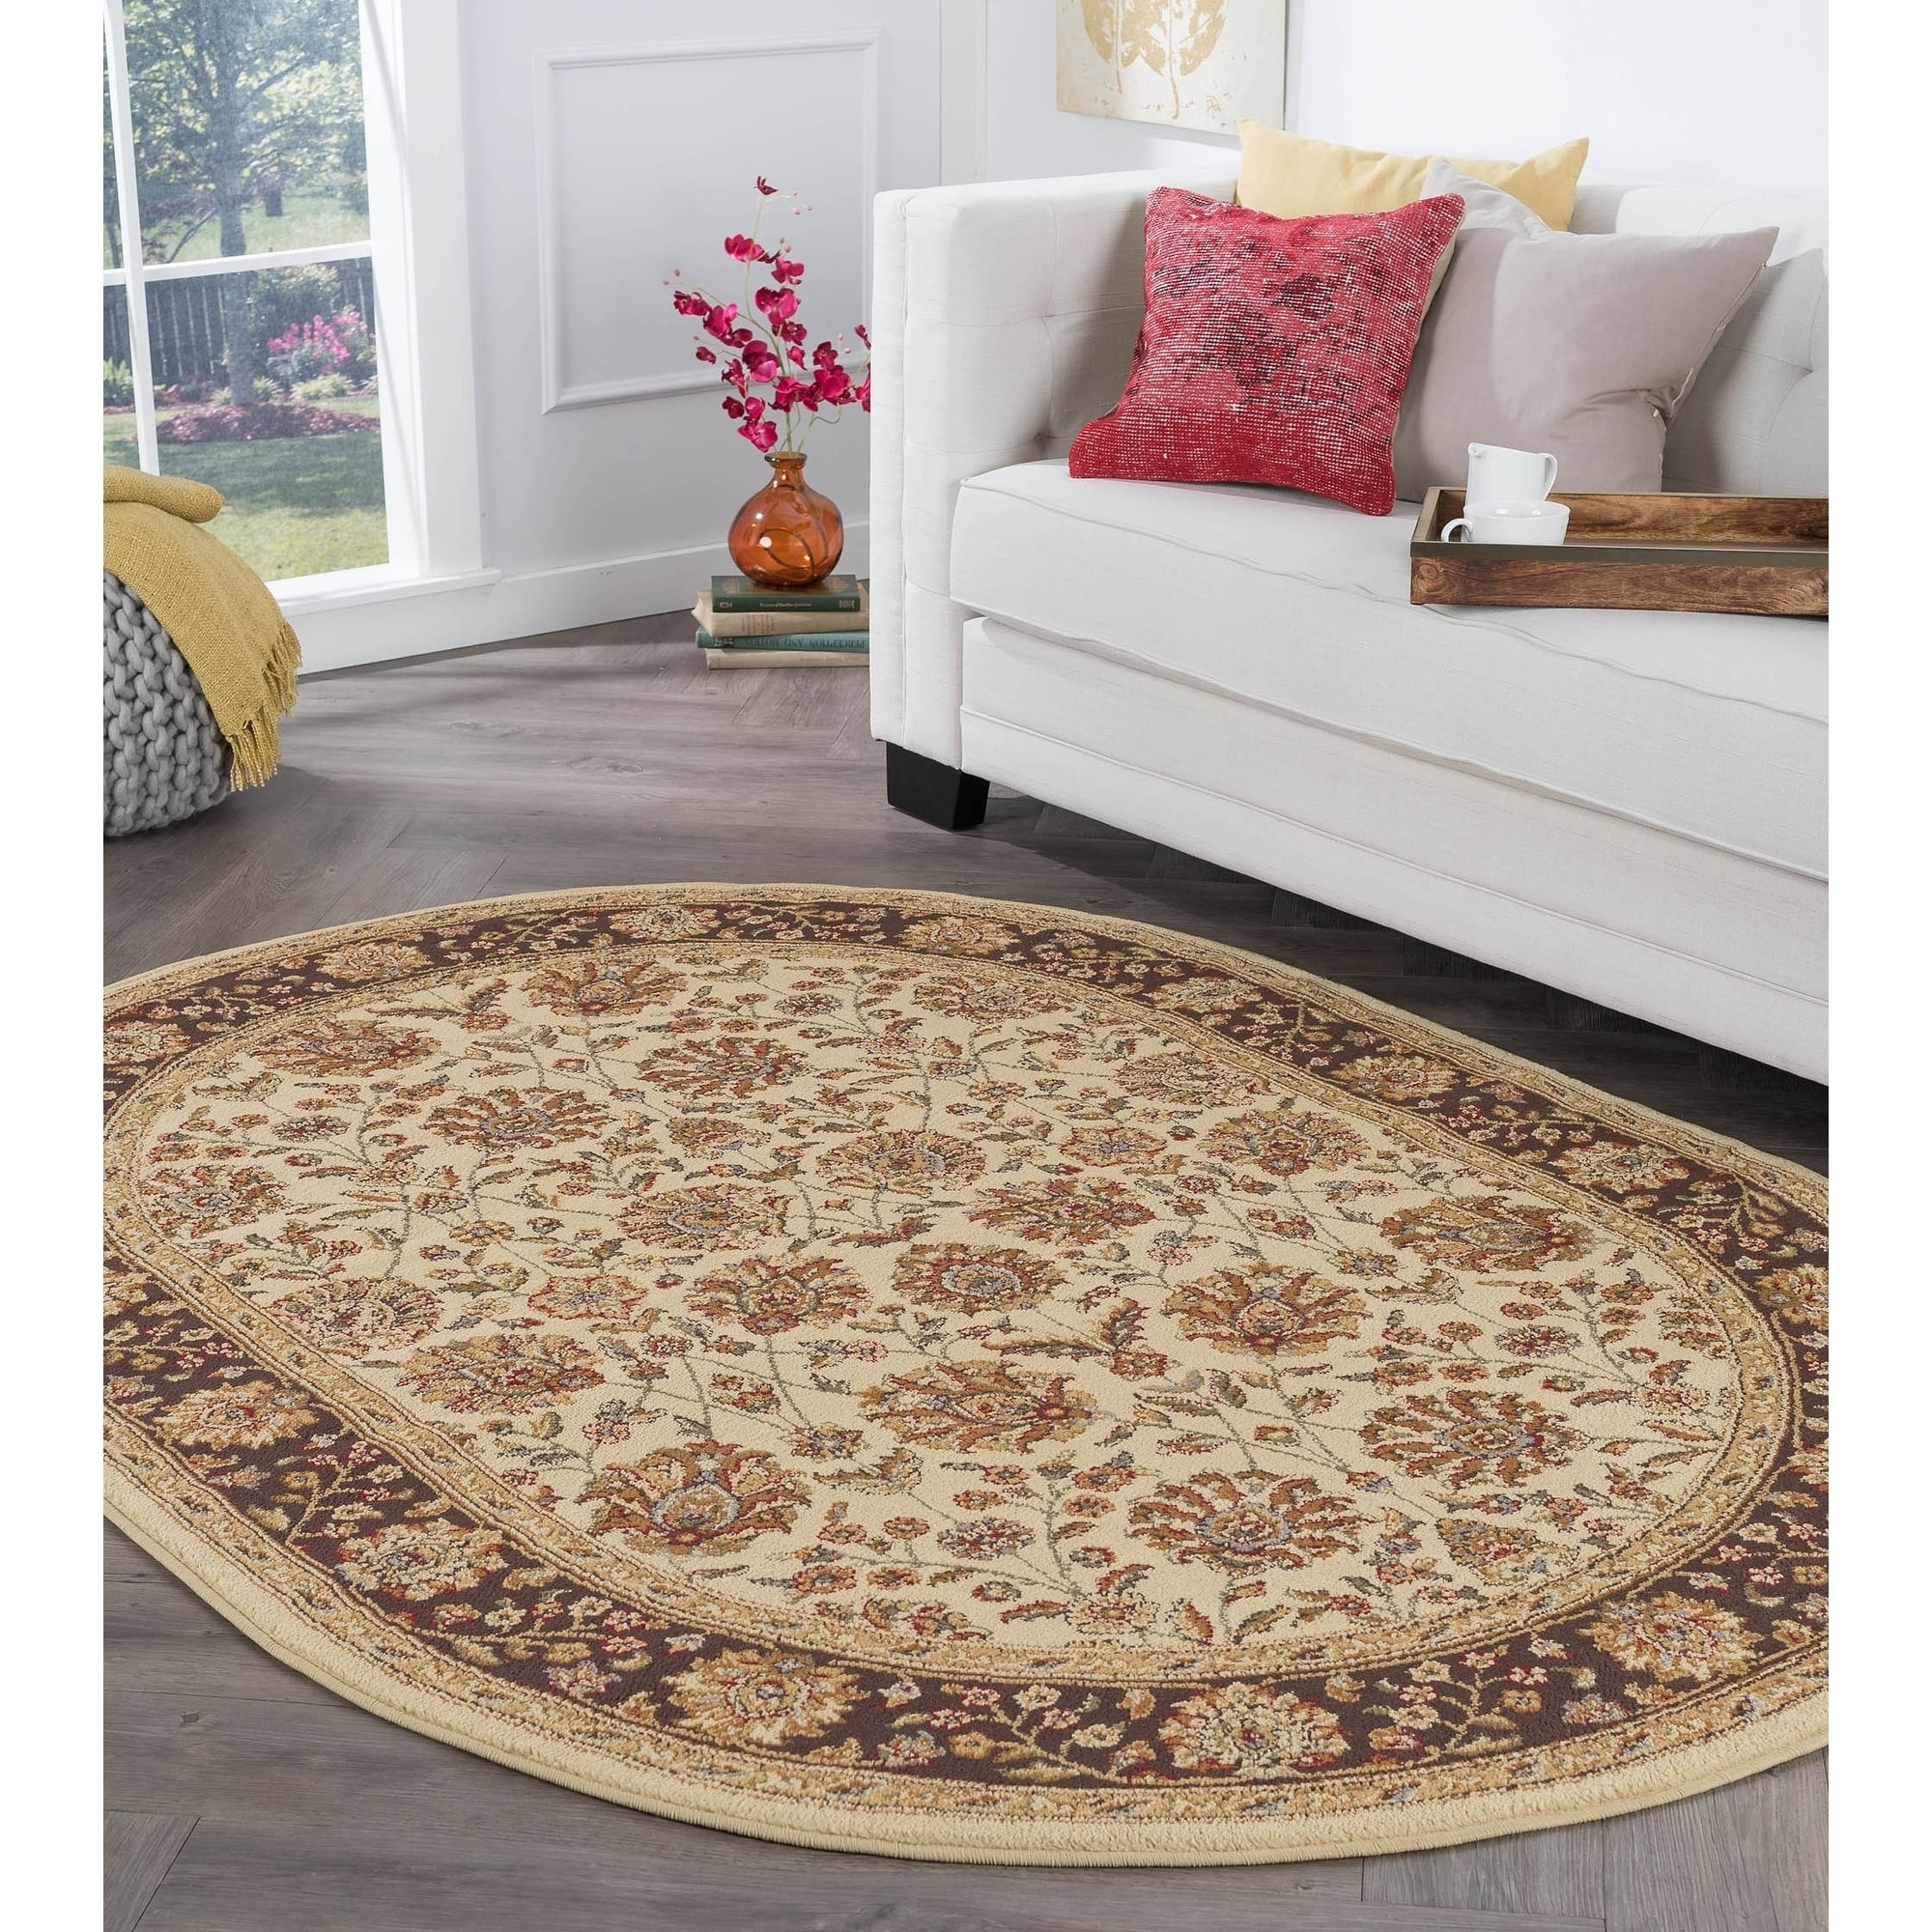 Alise Rugs  Rhythm Transitional Floral Oval Area Rug - 5'3 x 7'3